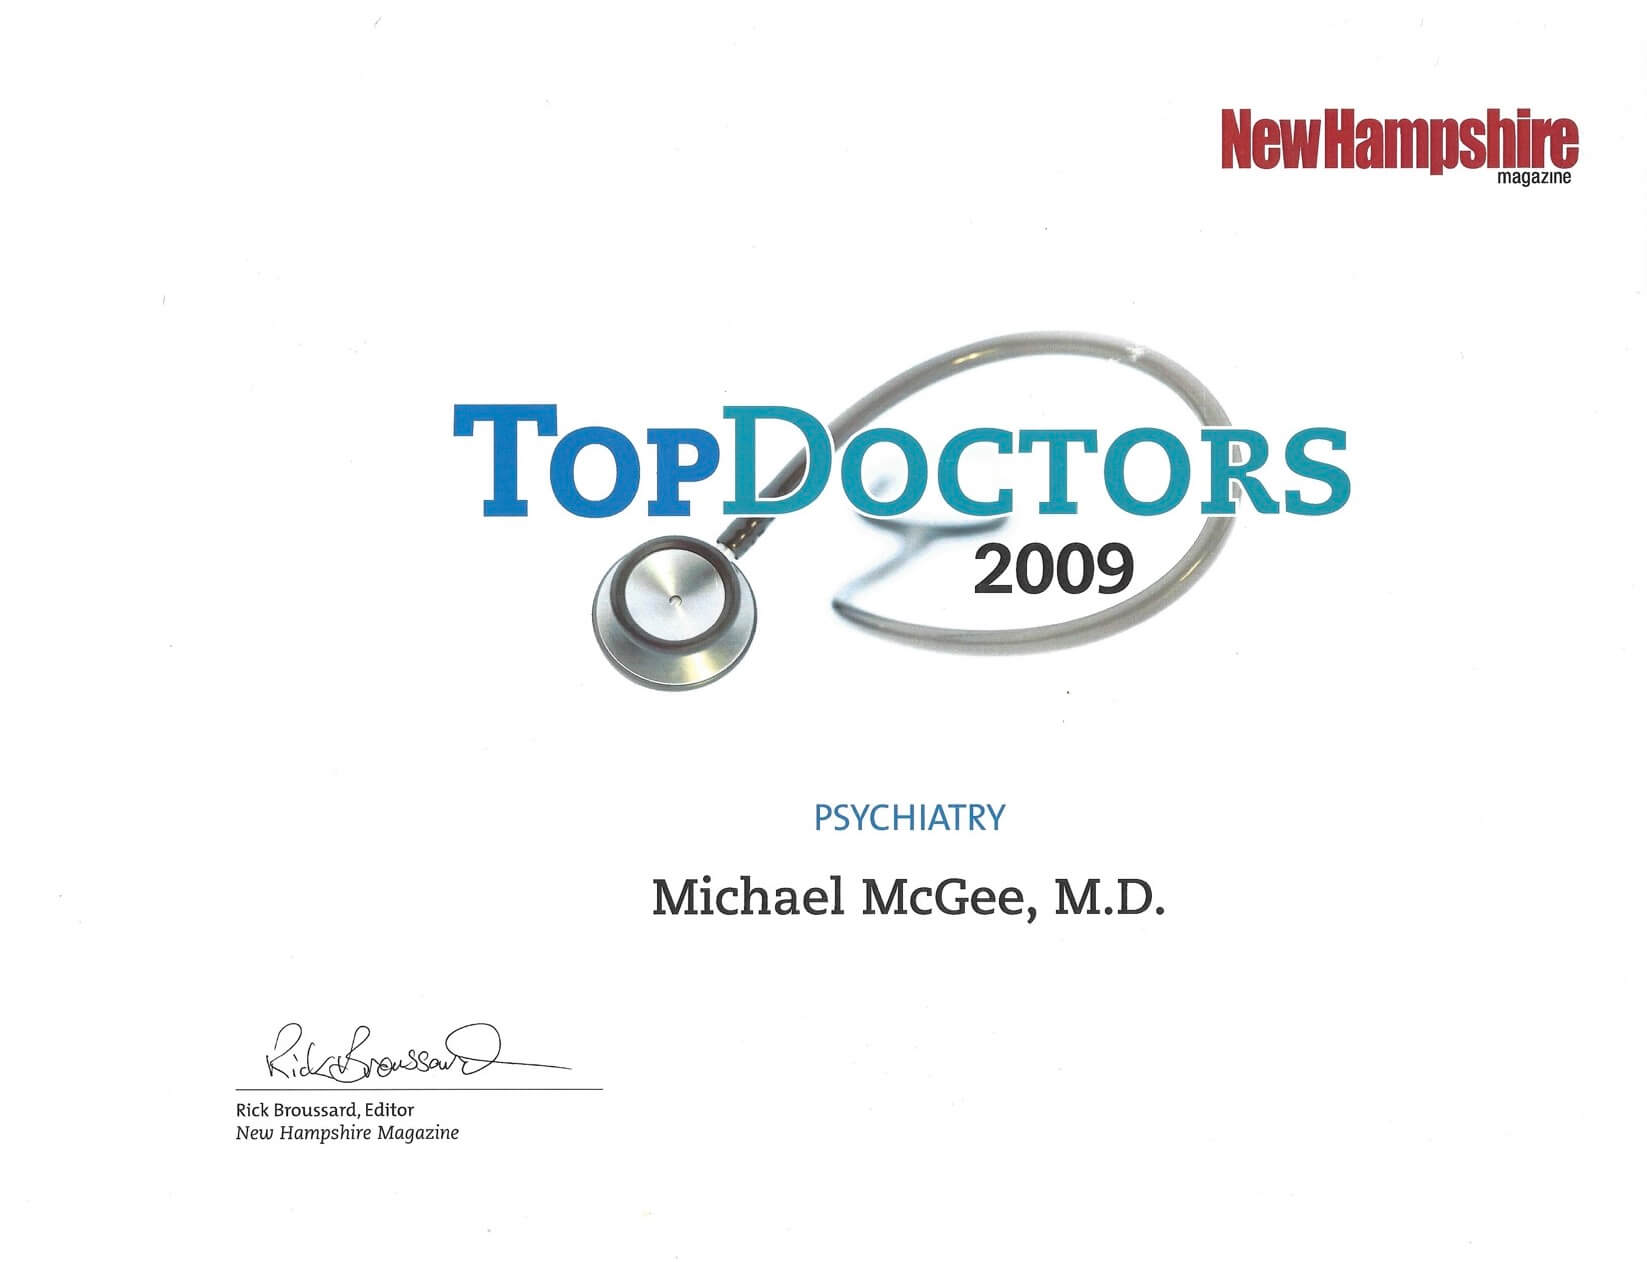 2009 Top Doctor Award